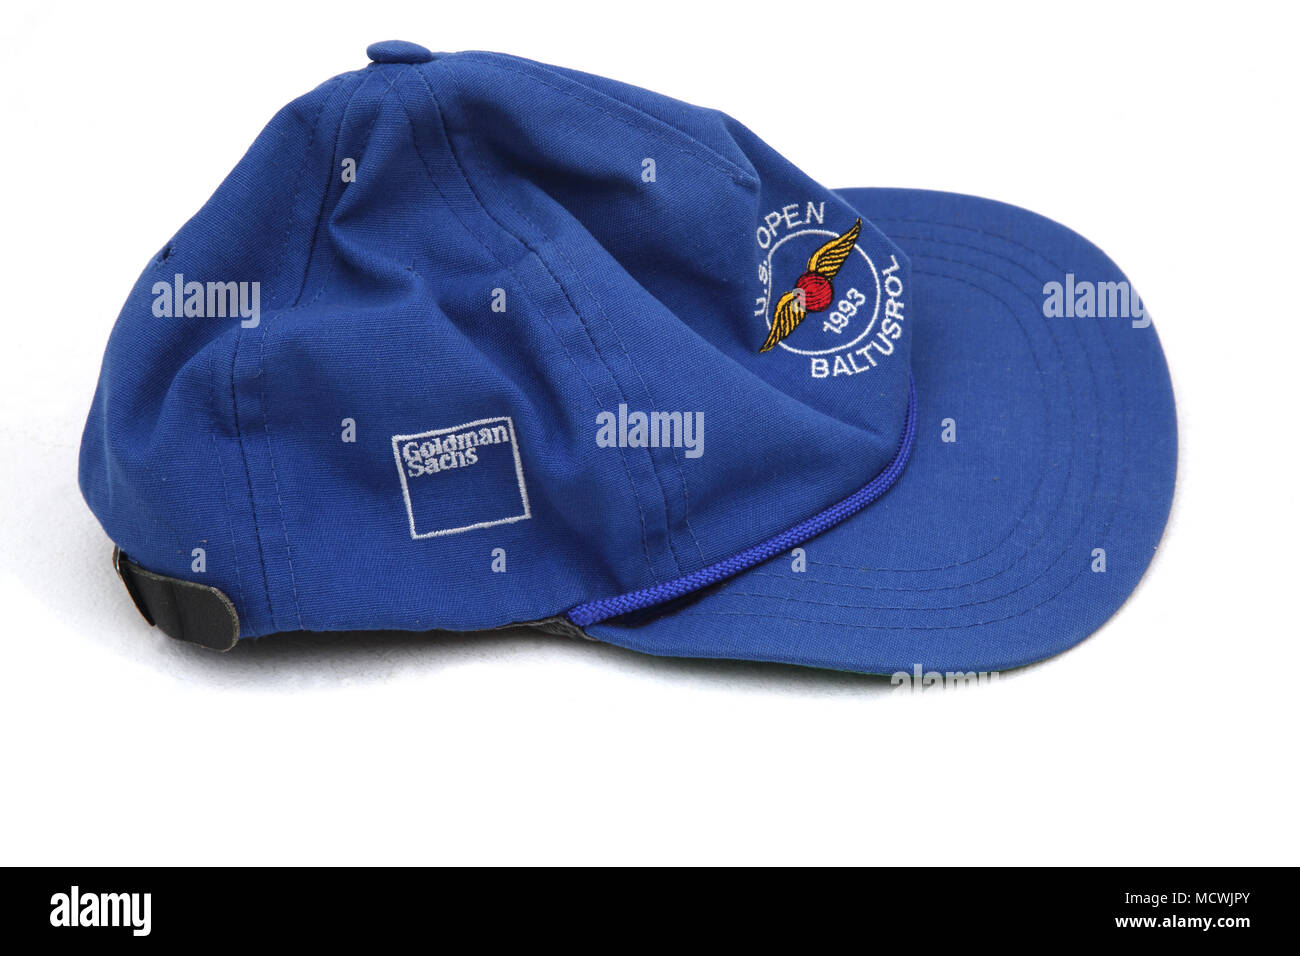 Blue Golf Cap U.S Open 1993 Baltusrol Goldman Sachs - Stock Image